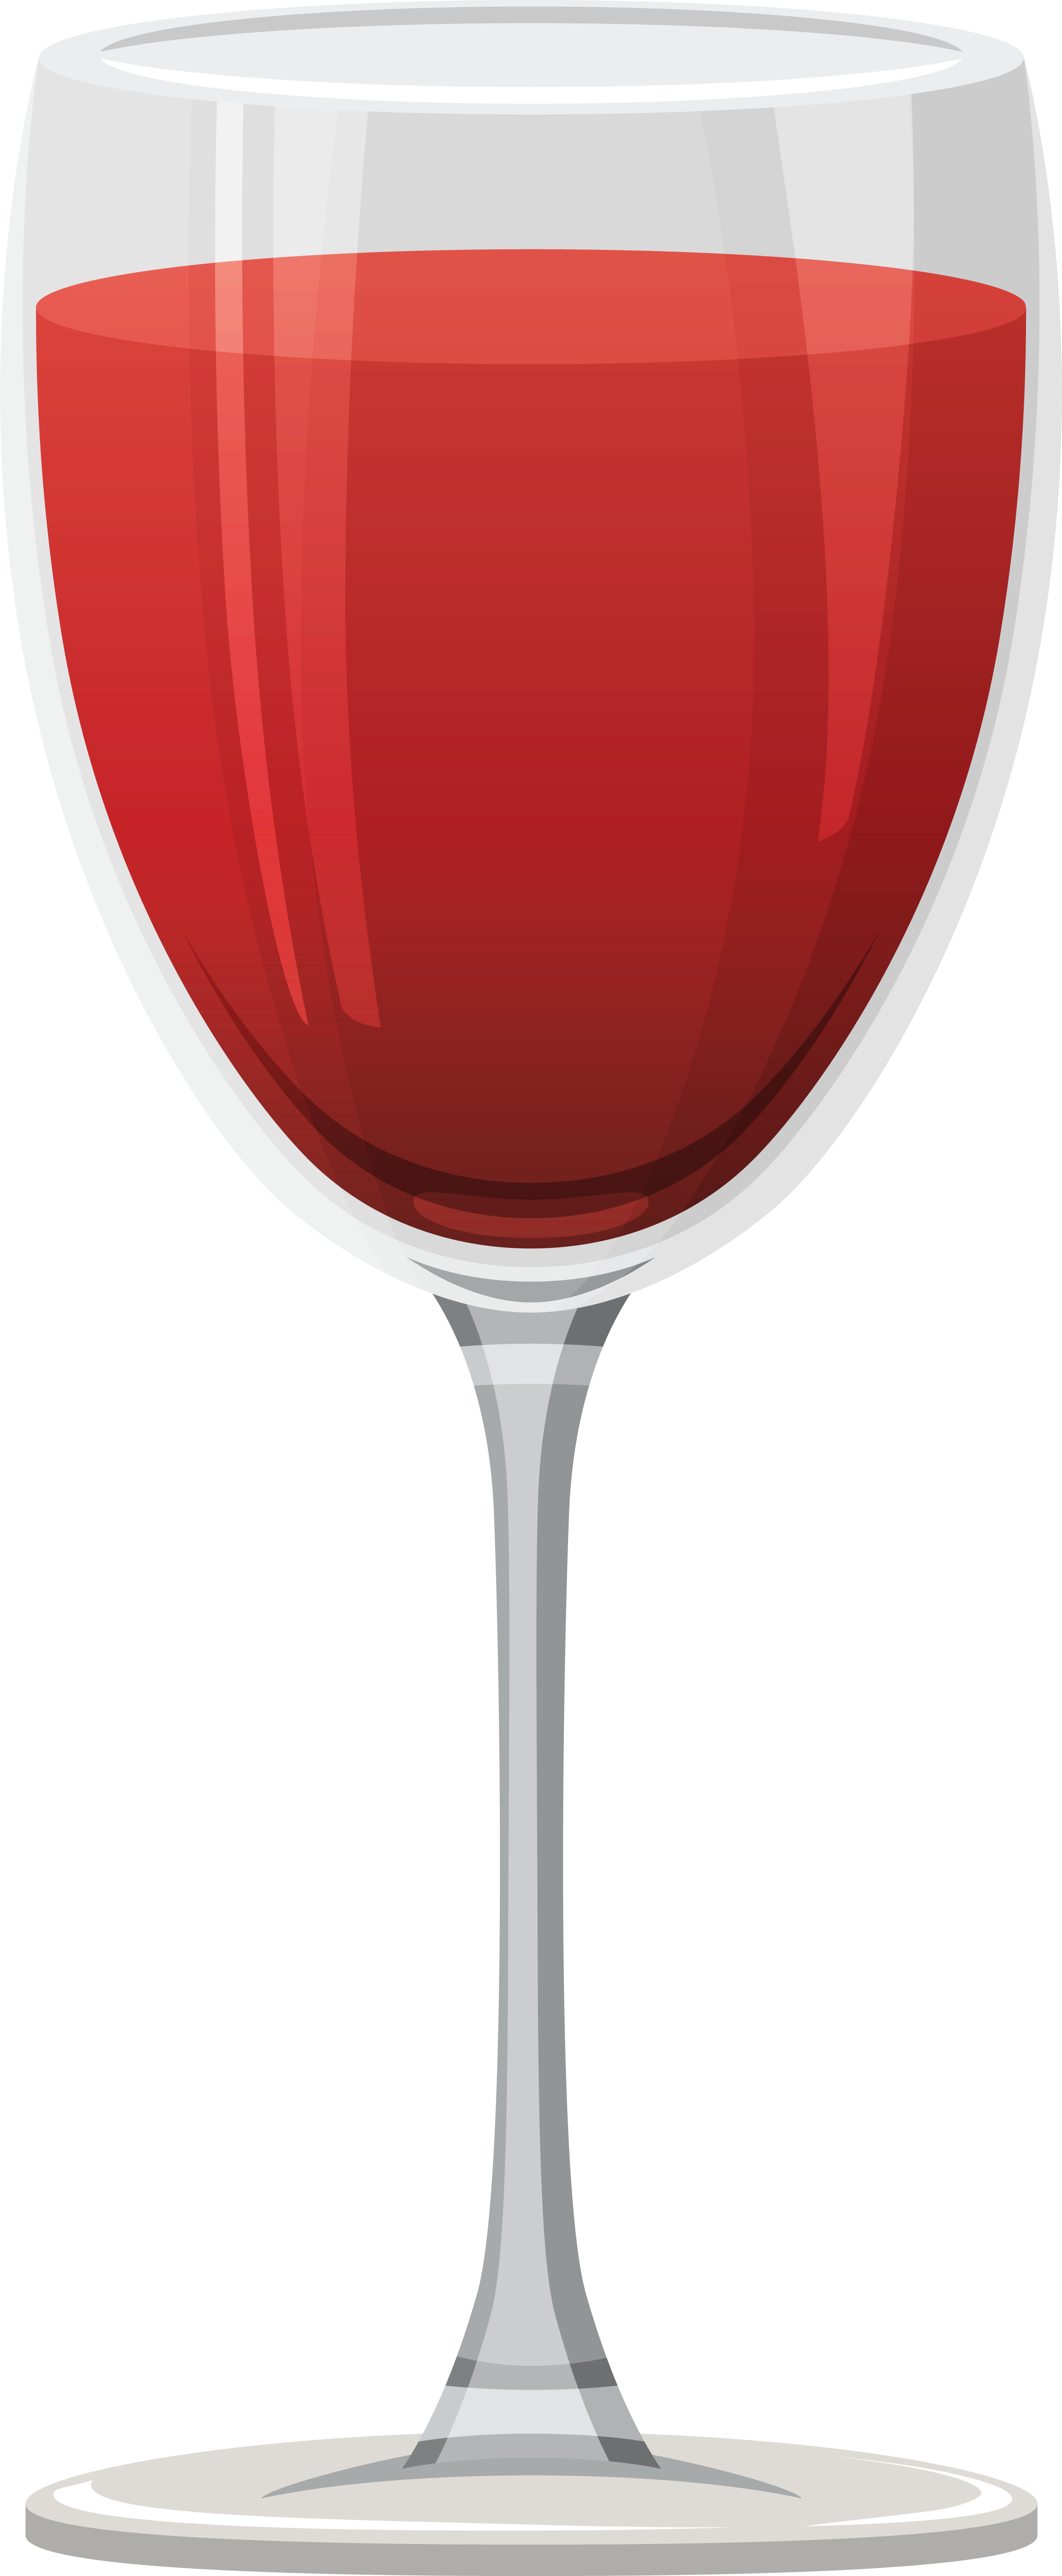 Of wine three isolated. Hair clipart glass